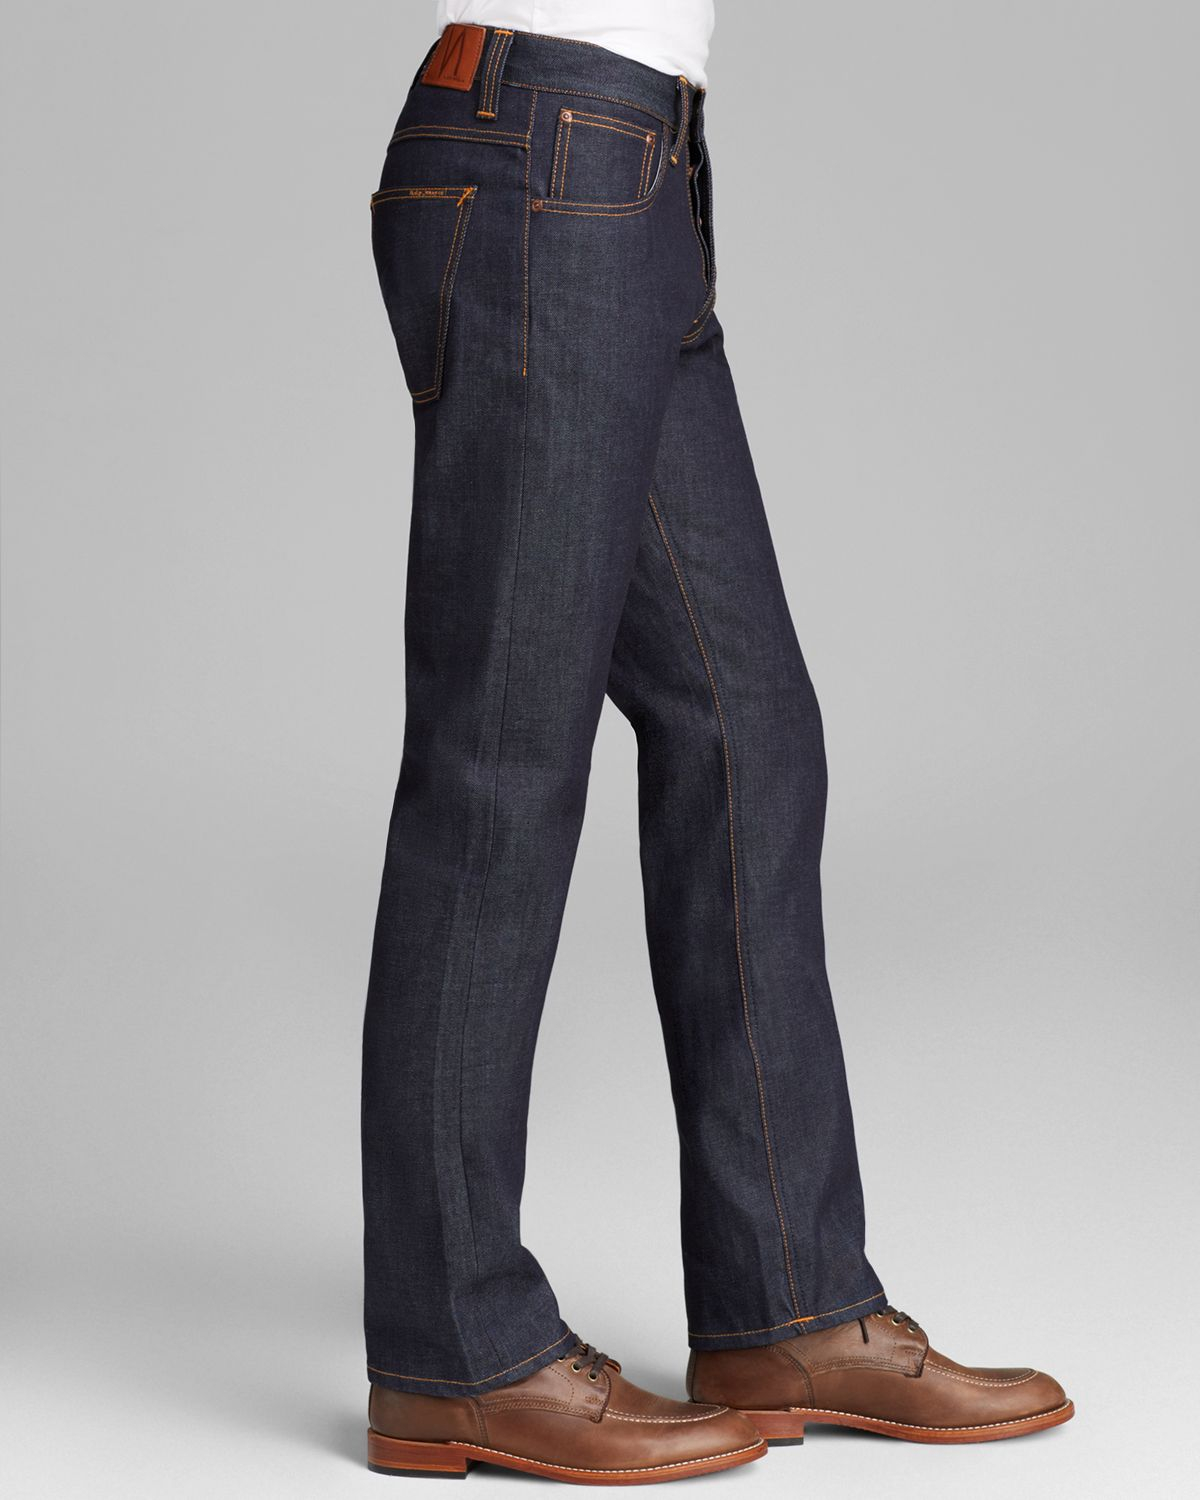 Nudie Jeans Jeans Co Alf Organic Straight Fit in Tonal Dry in Blue for Men